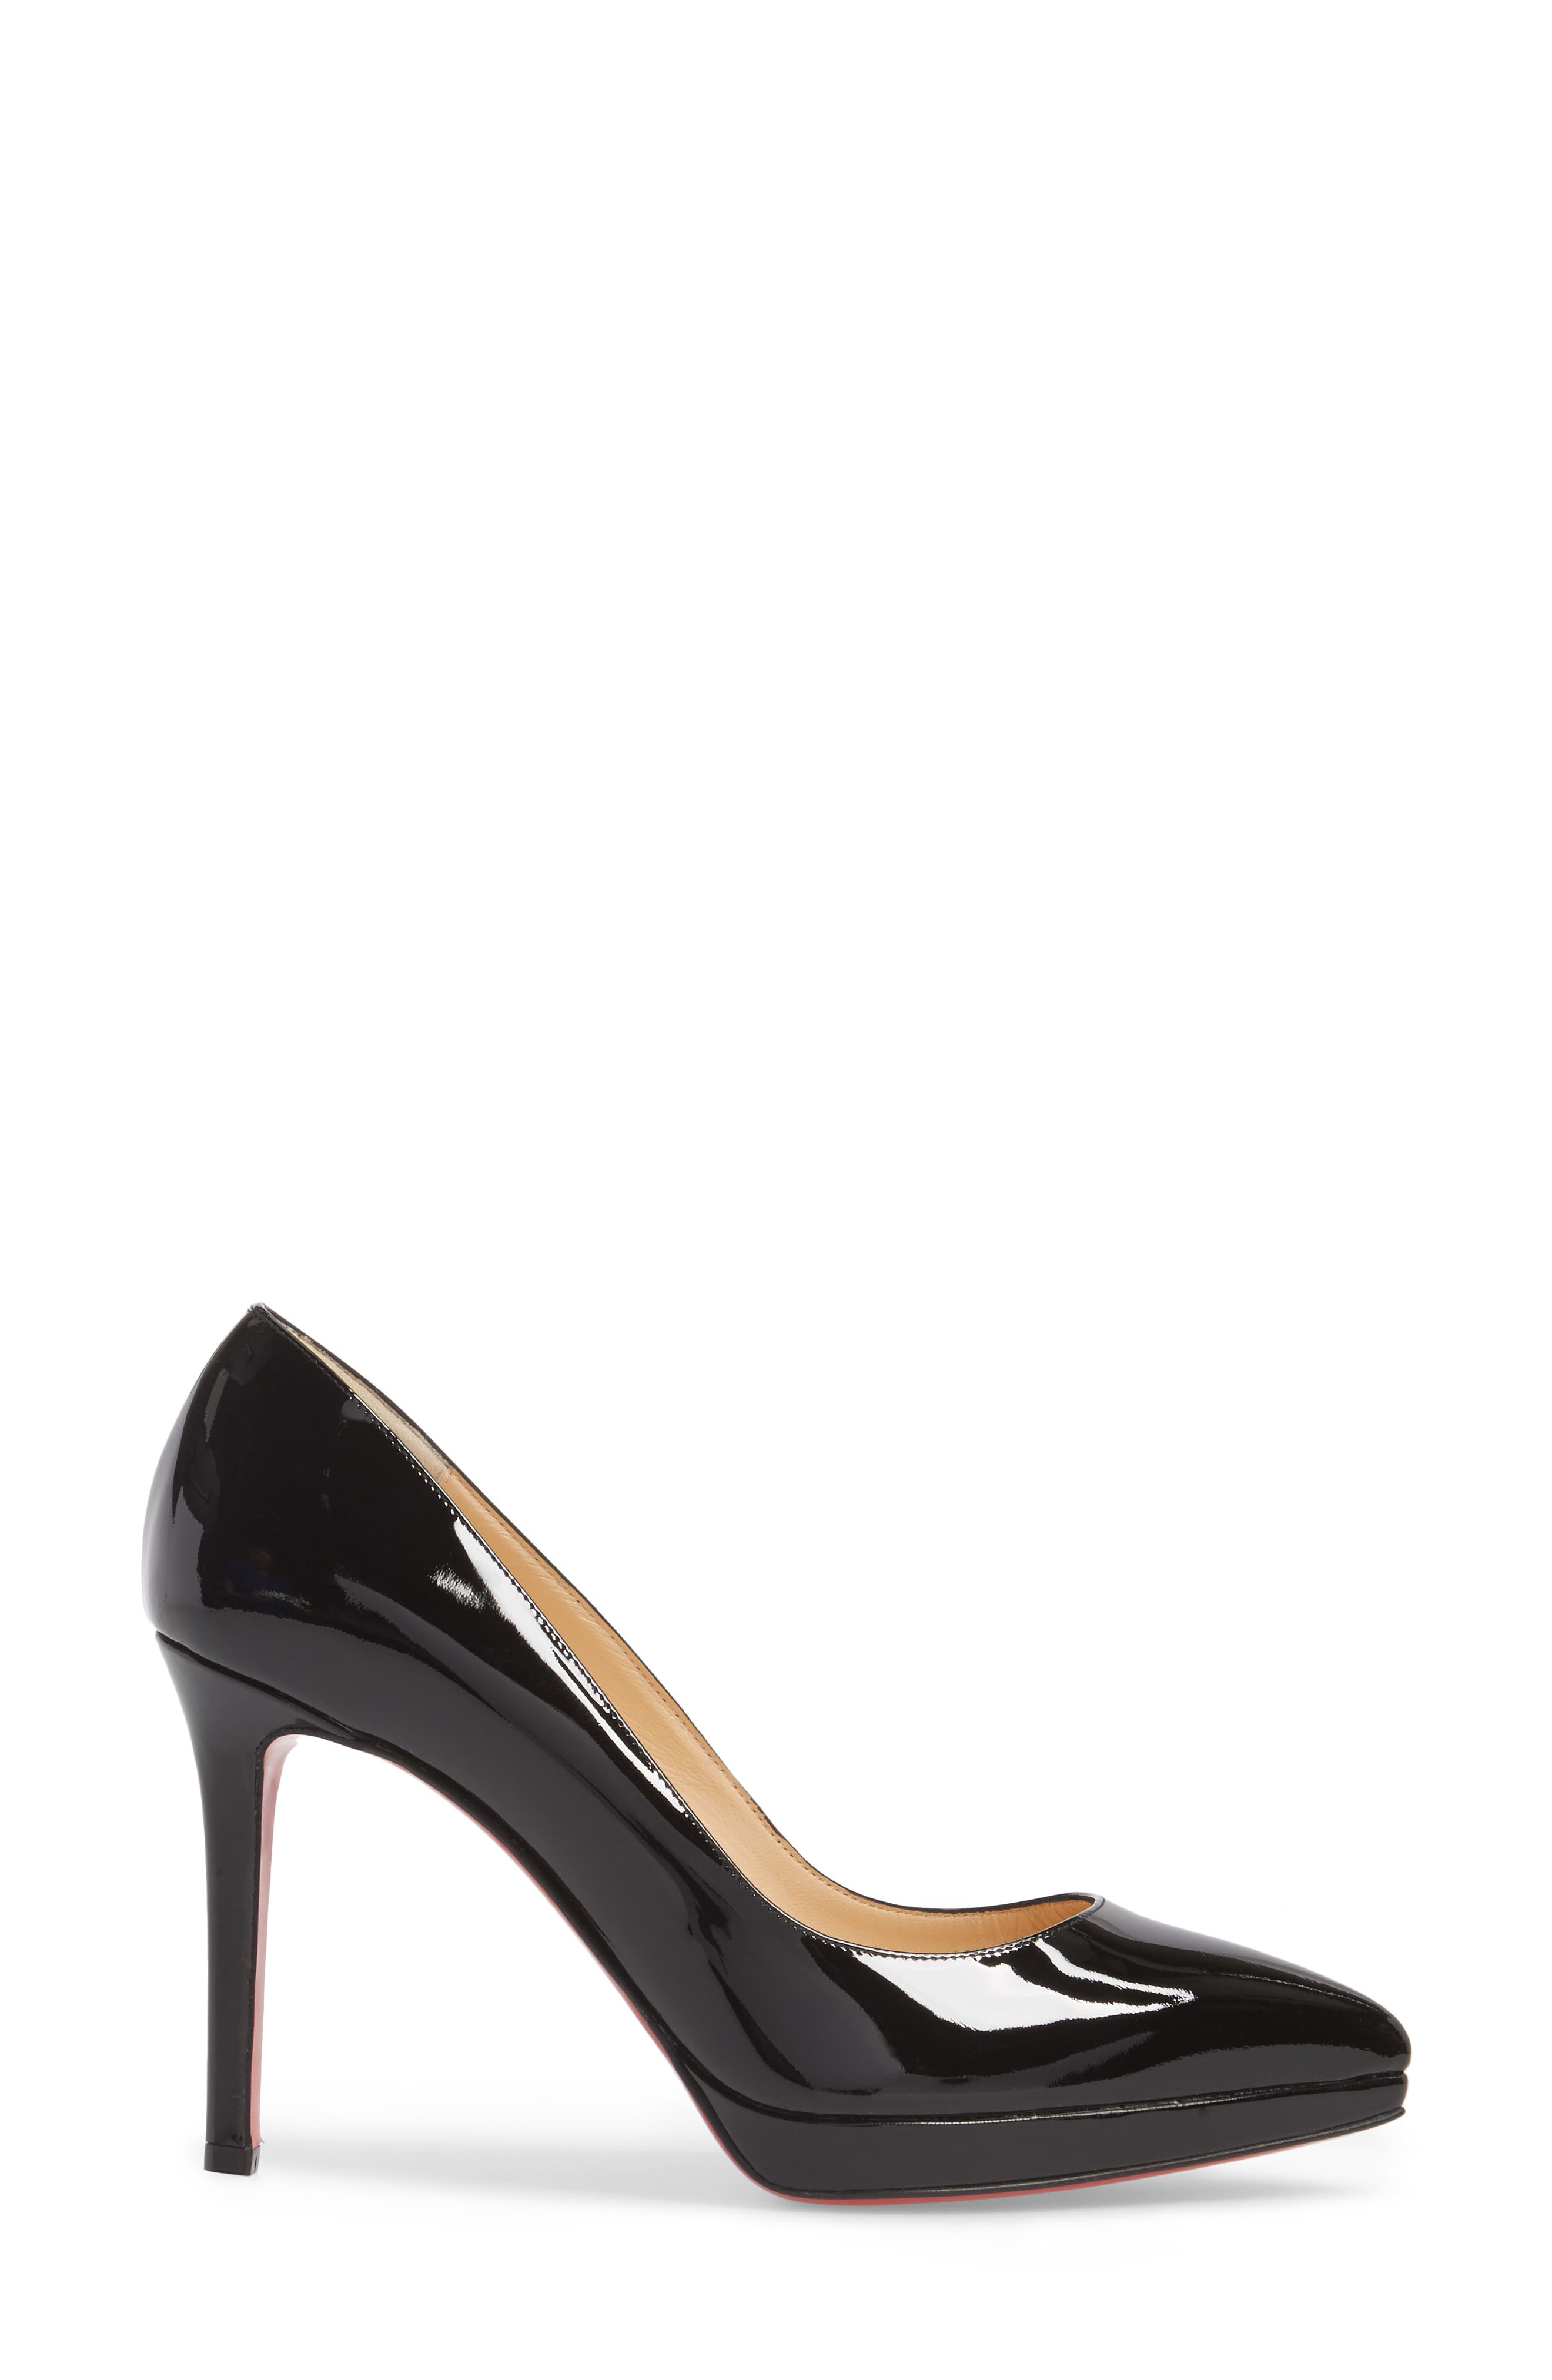 CHRISTIAN LOUBOUTIN, Pigalle Plato Pointy Toe Platform Pump, Alternate thumbnail 3, color, BLACK PATENT